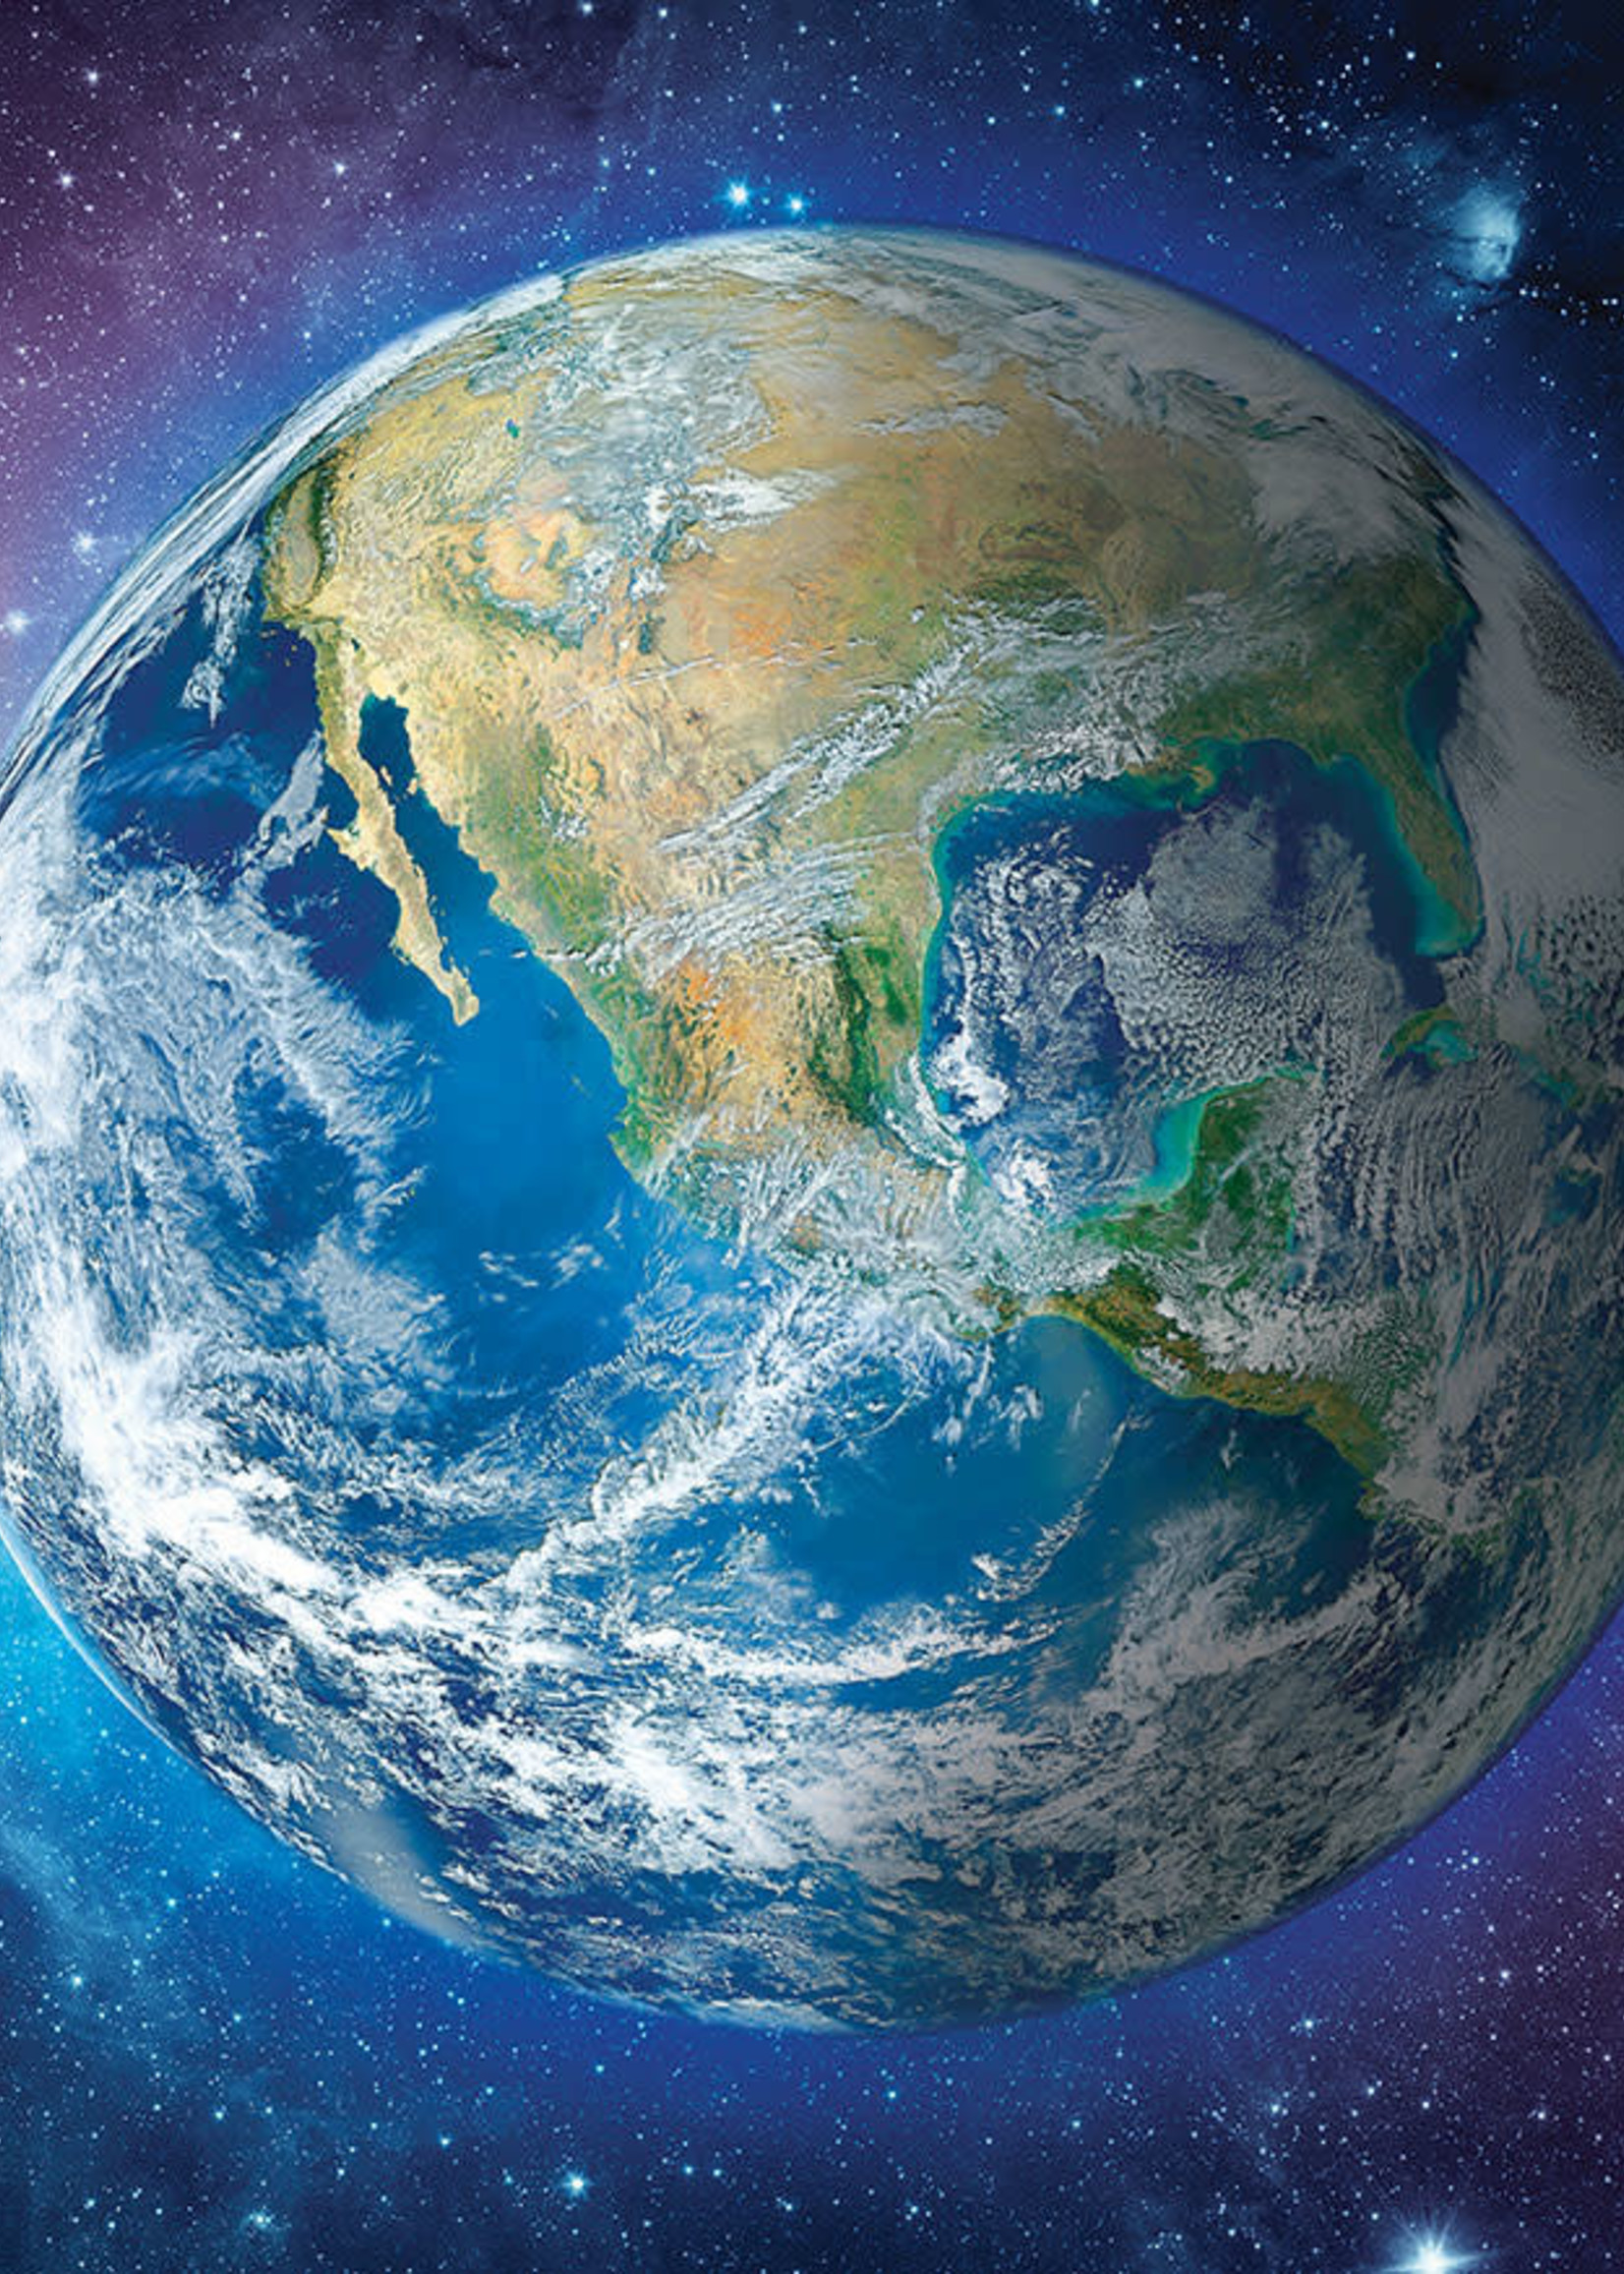 Eurographic Our Planet